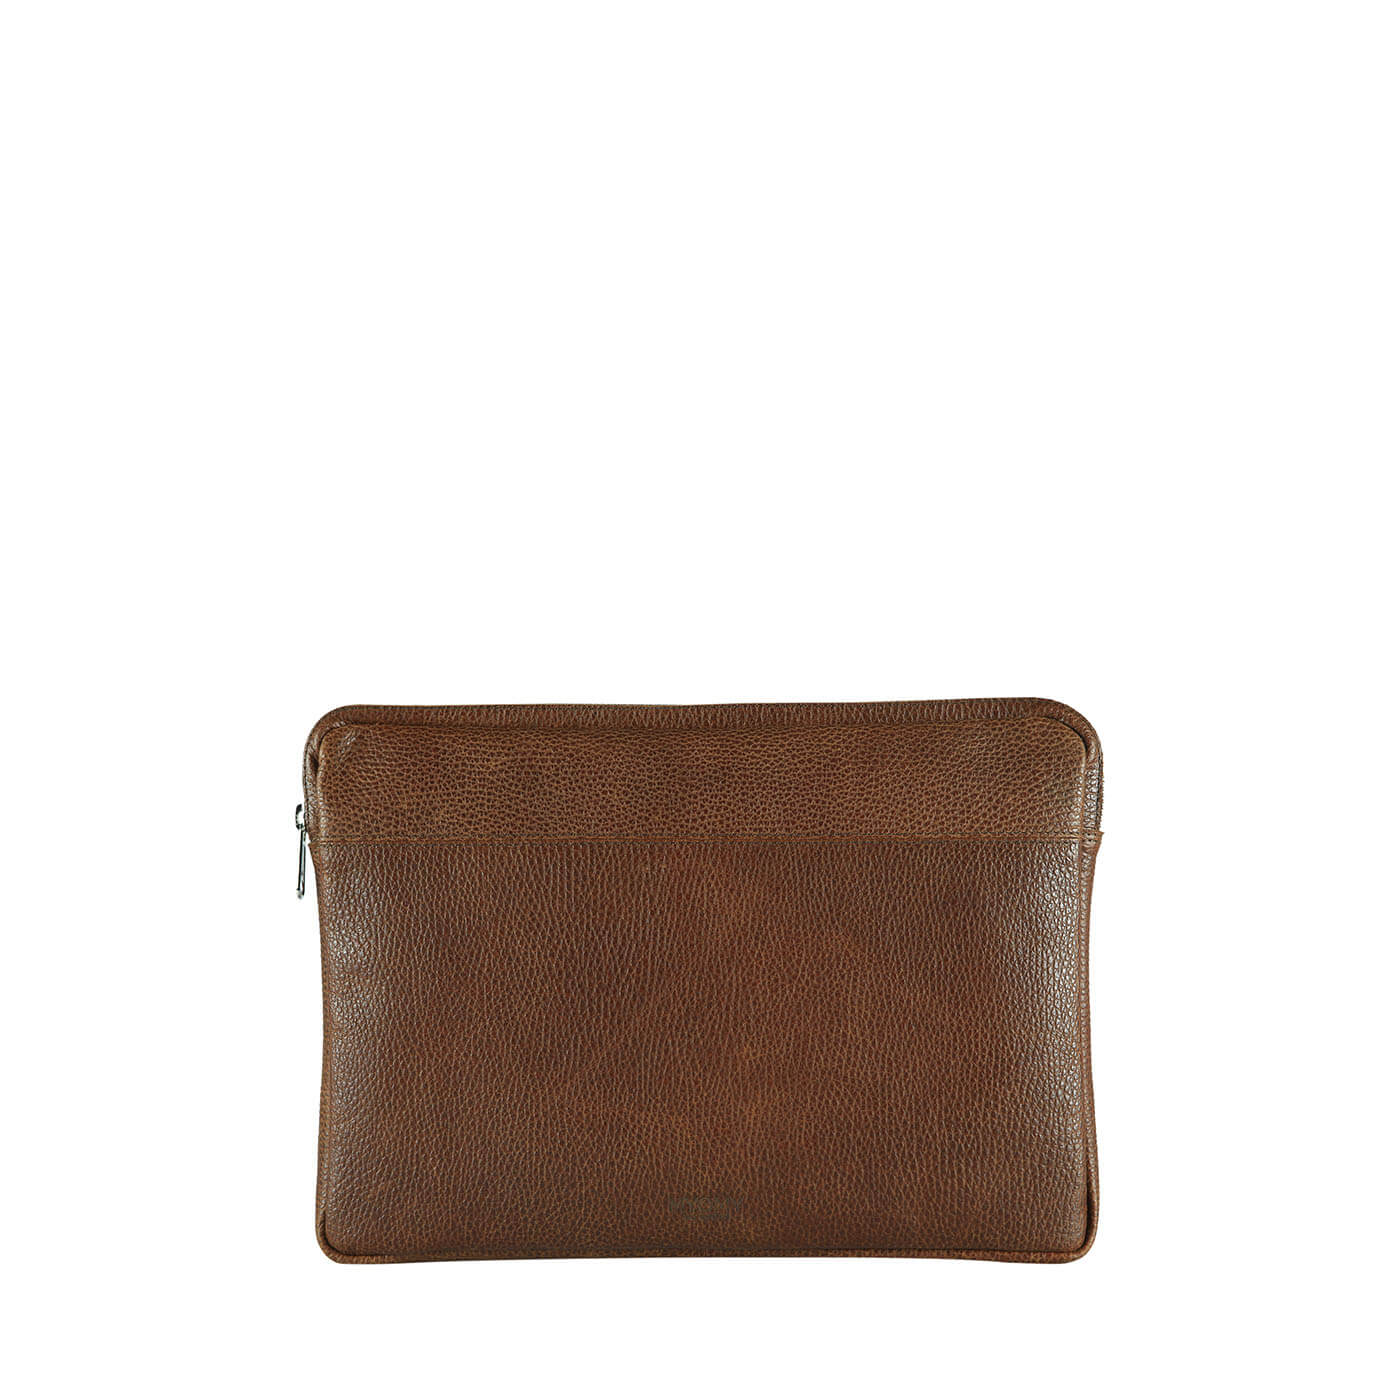 MY PHILIP BAG Laptop Sleeve 13 inch – rambler brandy